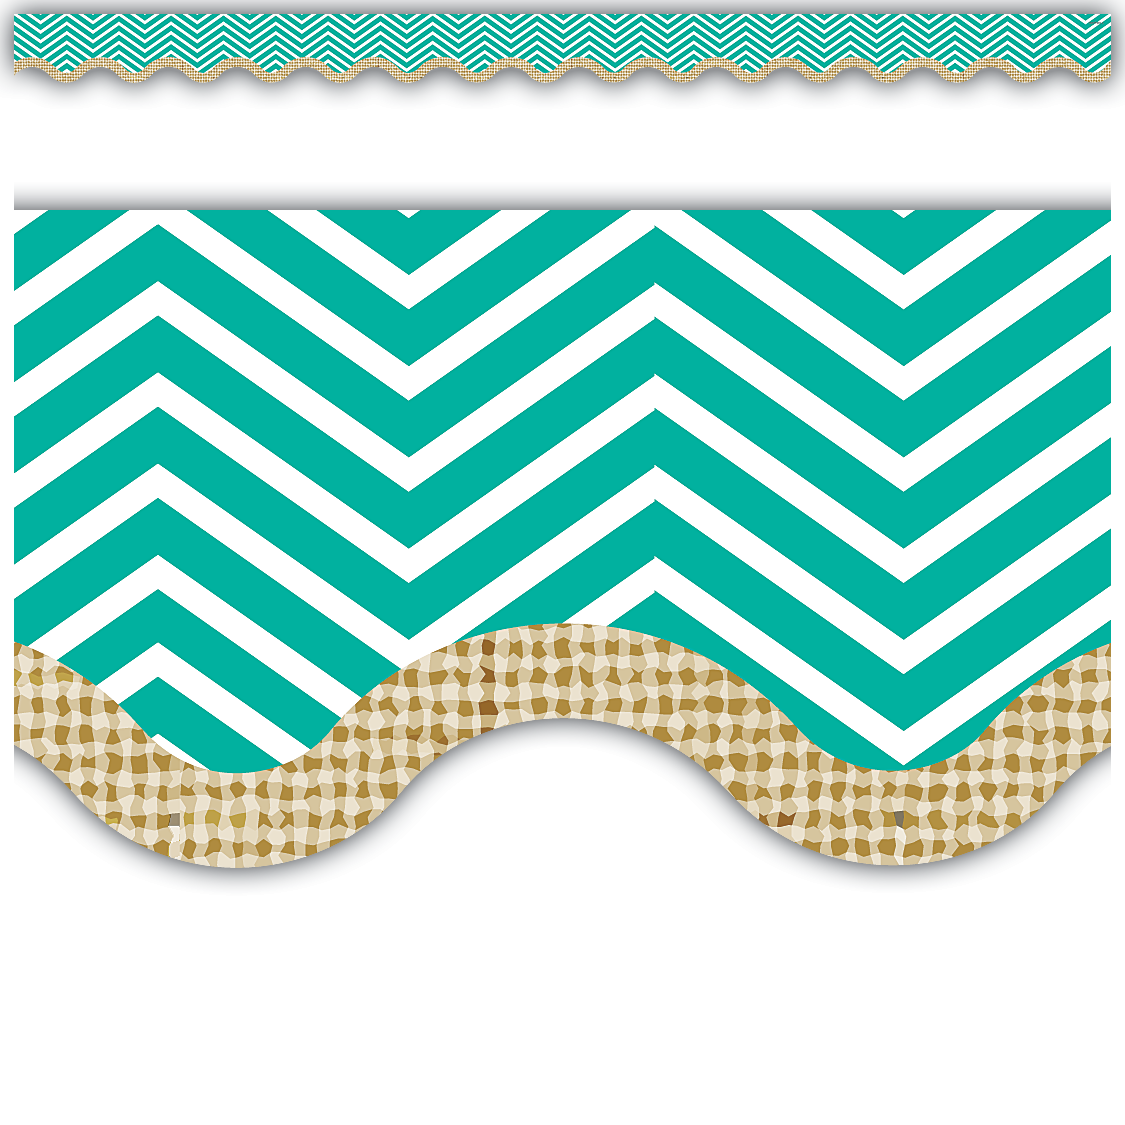 Chevron Burlap Scalloped Border Trim